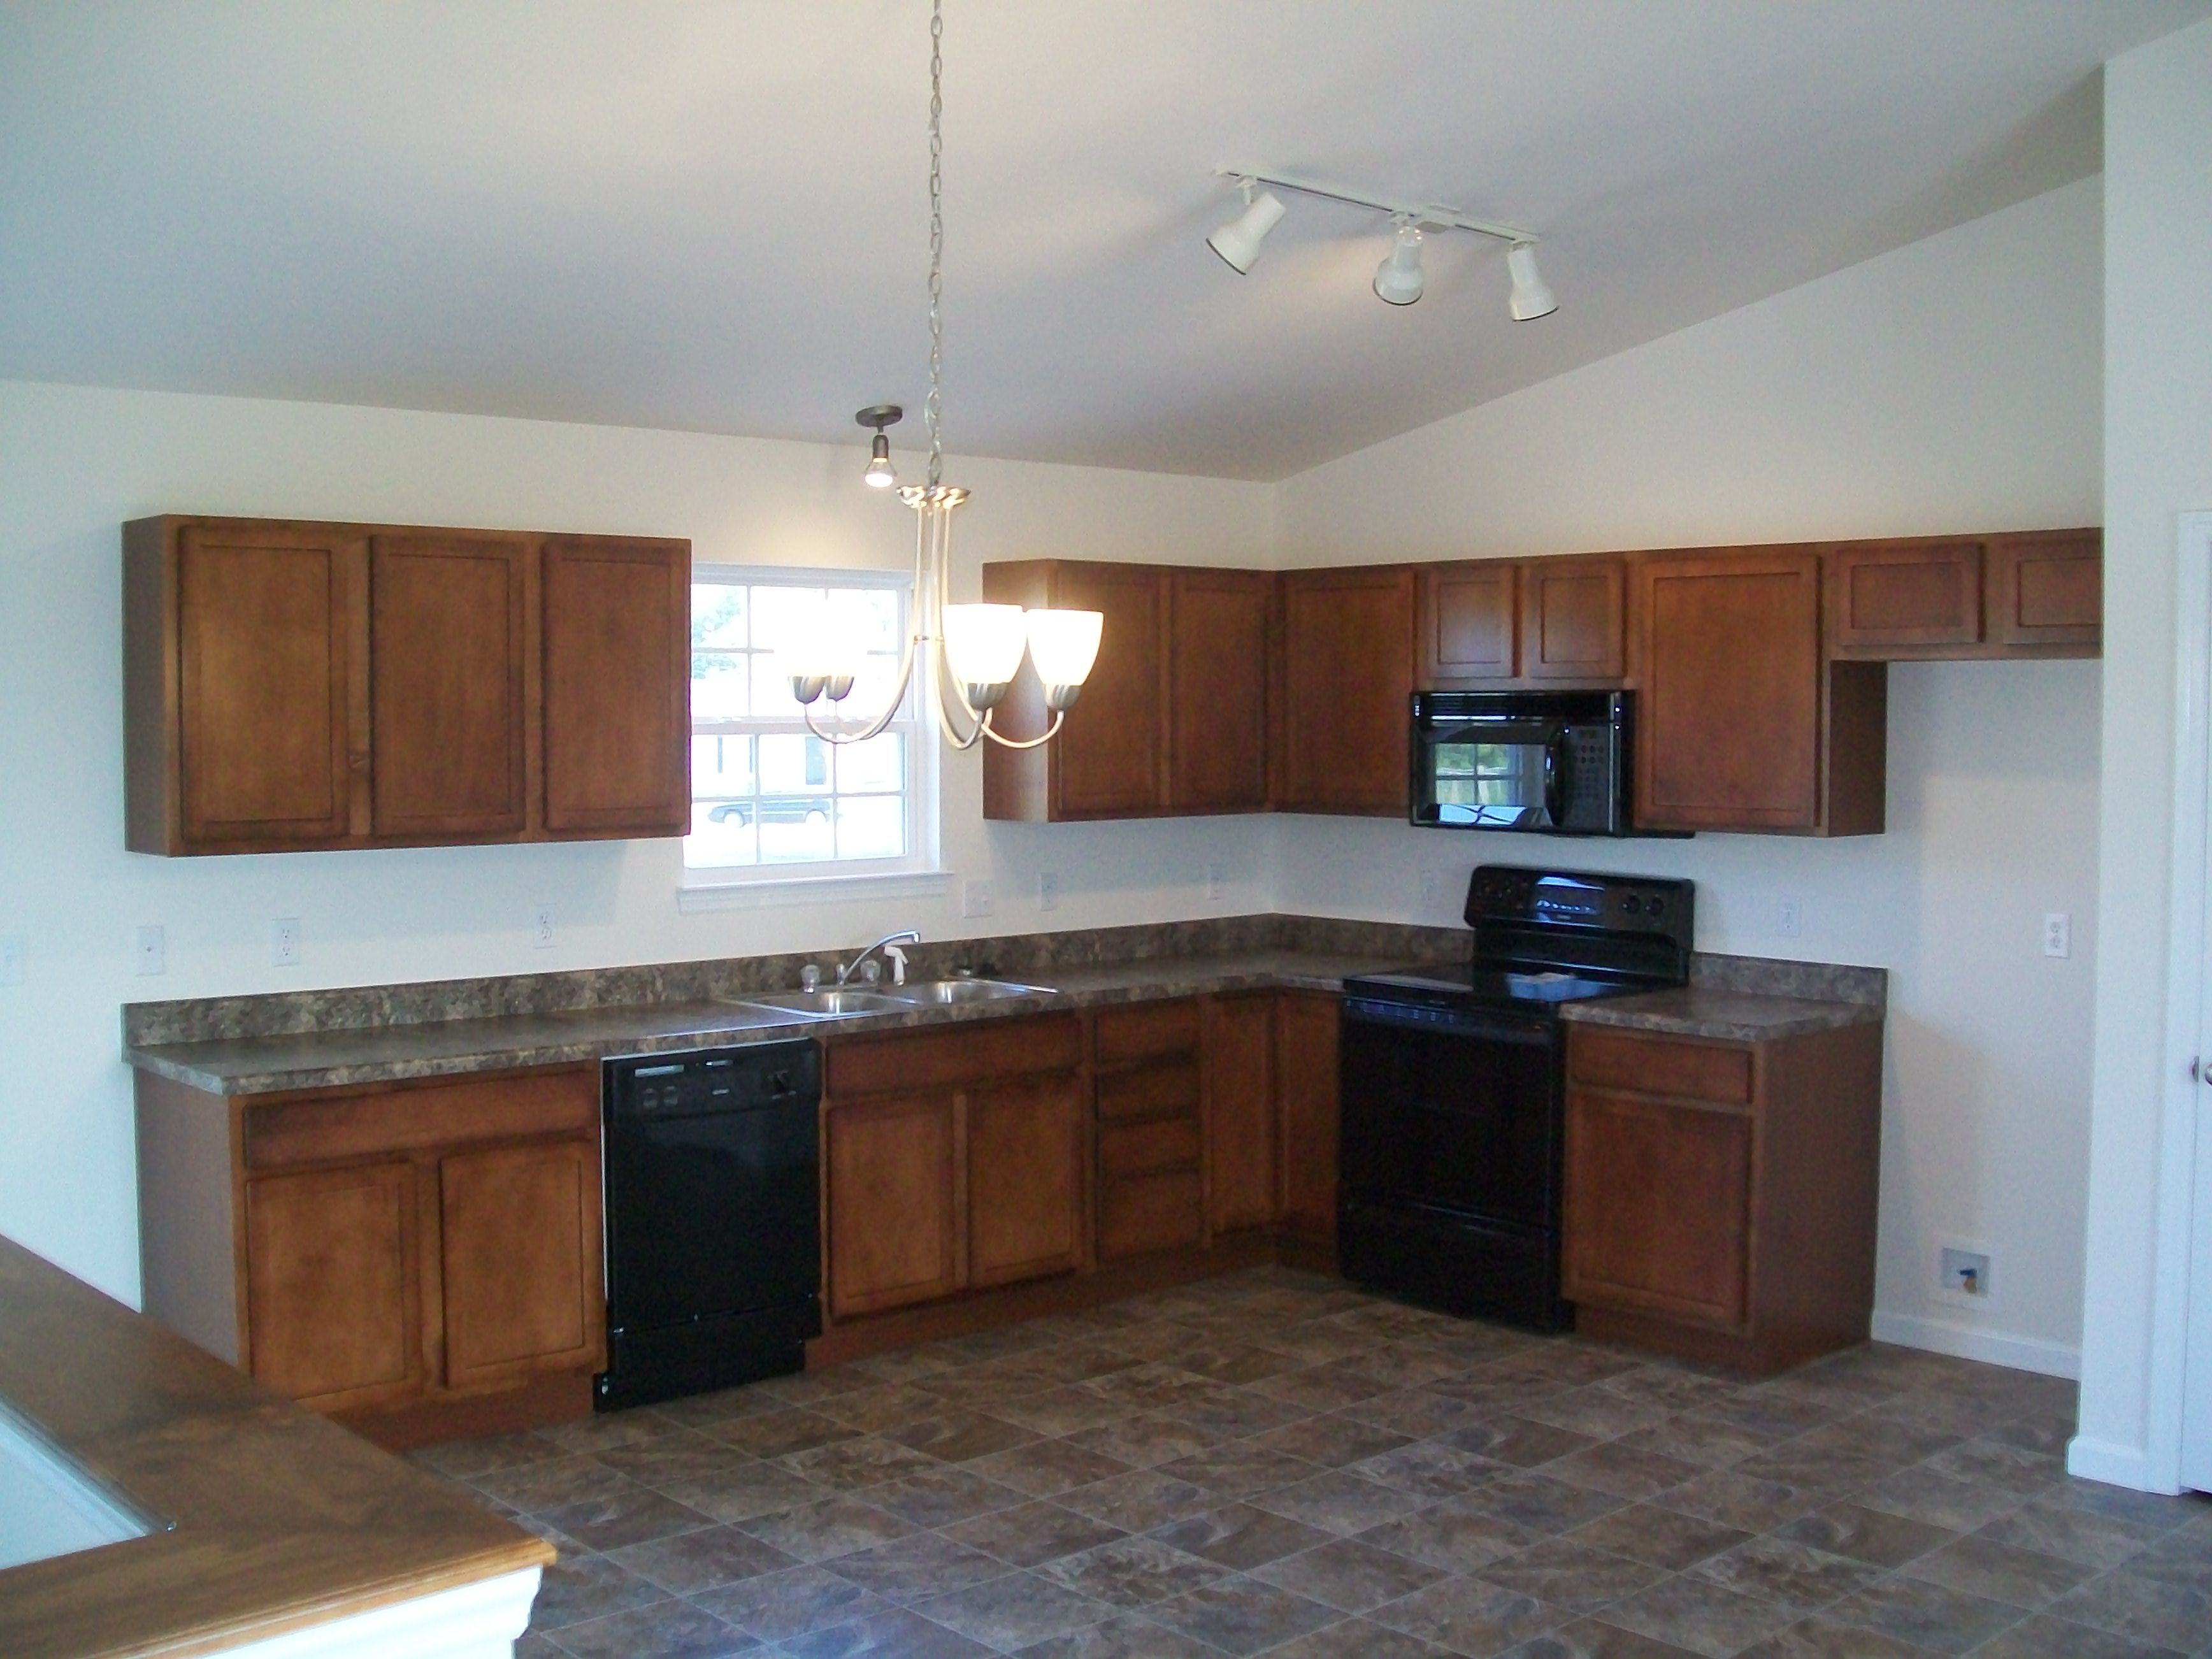 Kitchen featured in The Veneto By Cannon Builders, Inc.  in St. Louis, MO